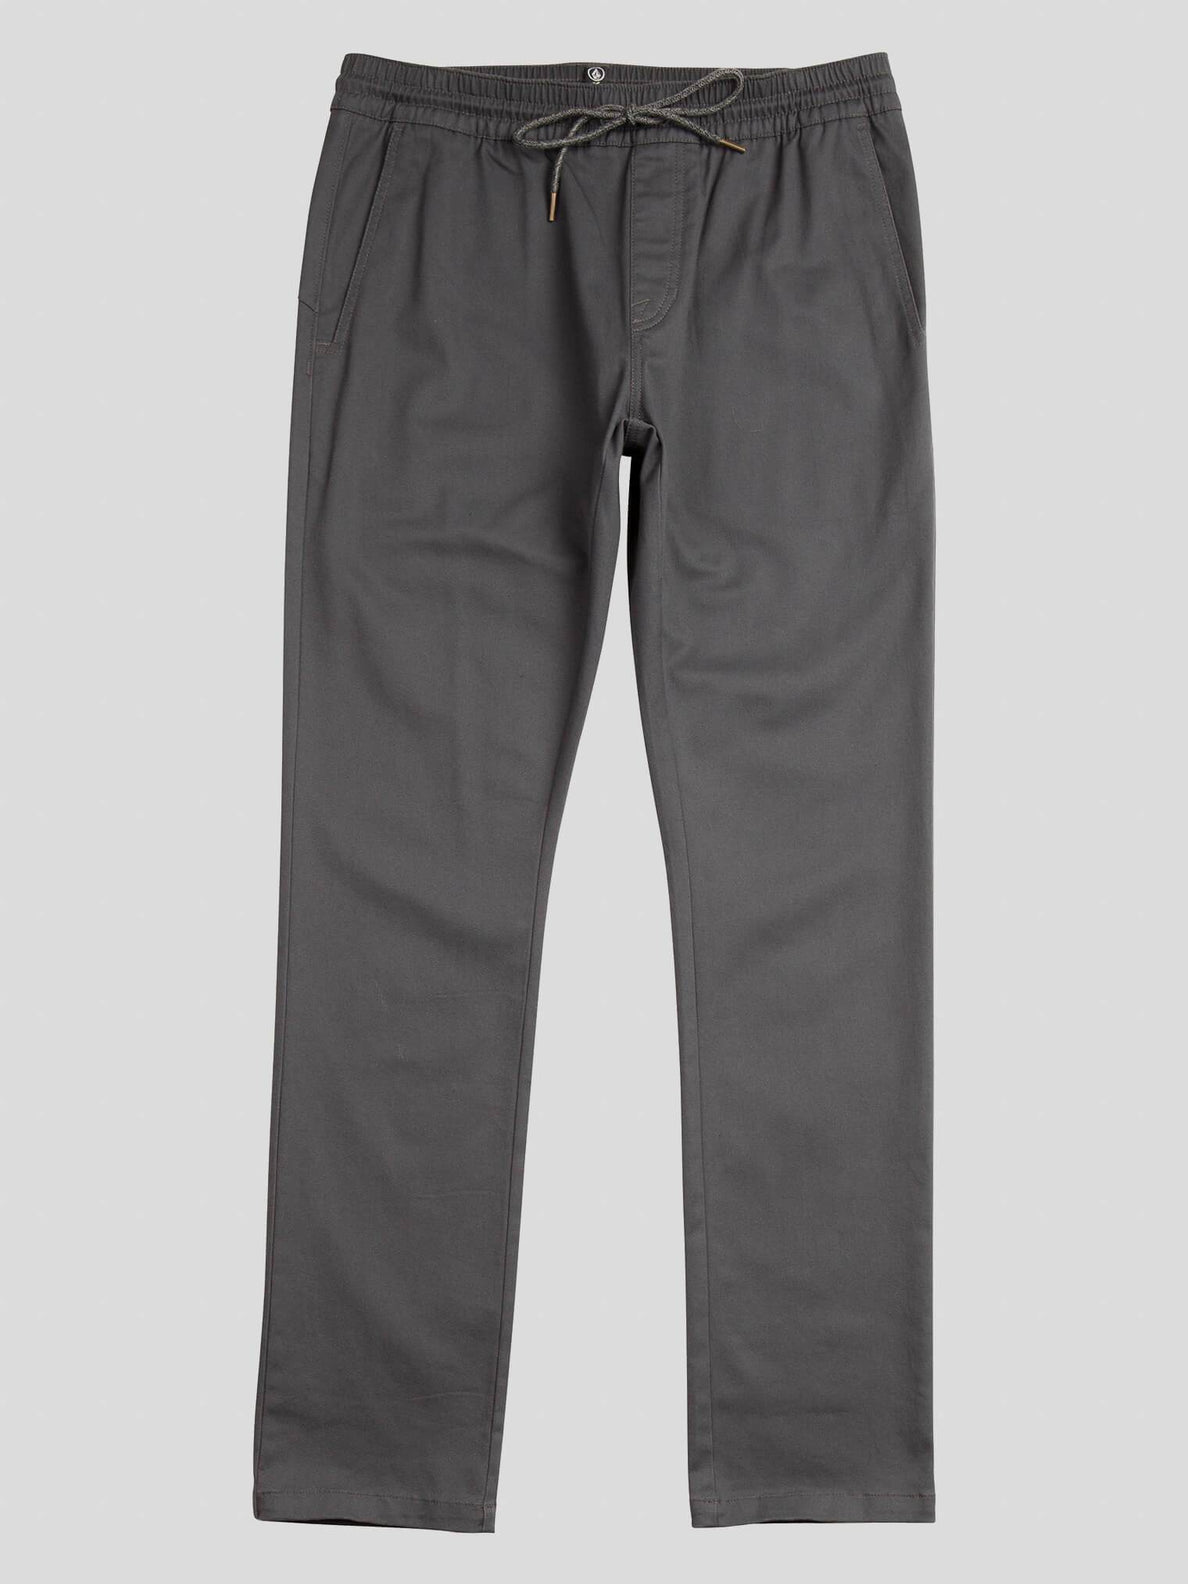 Frickin Comfort Chino Pants In Charcoal Grey, Third Alternate View